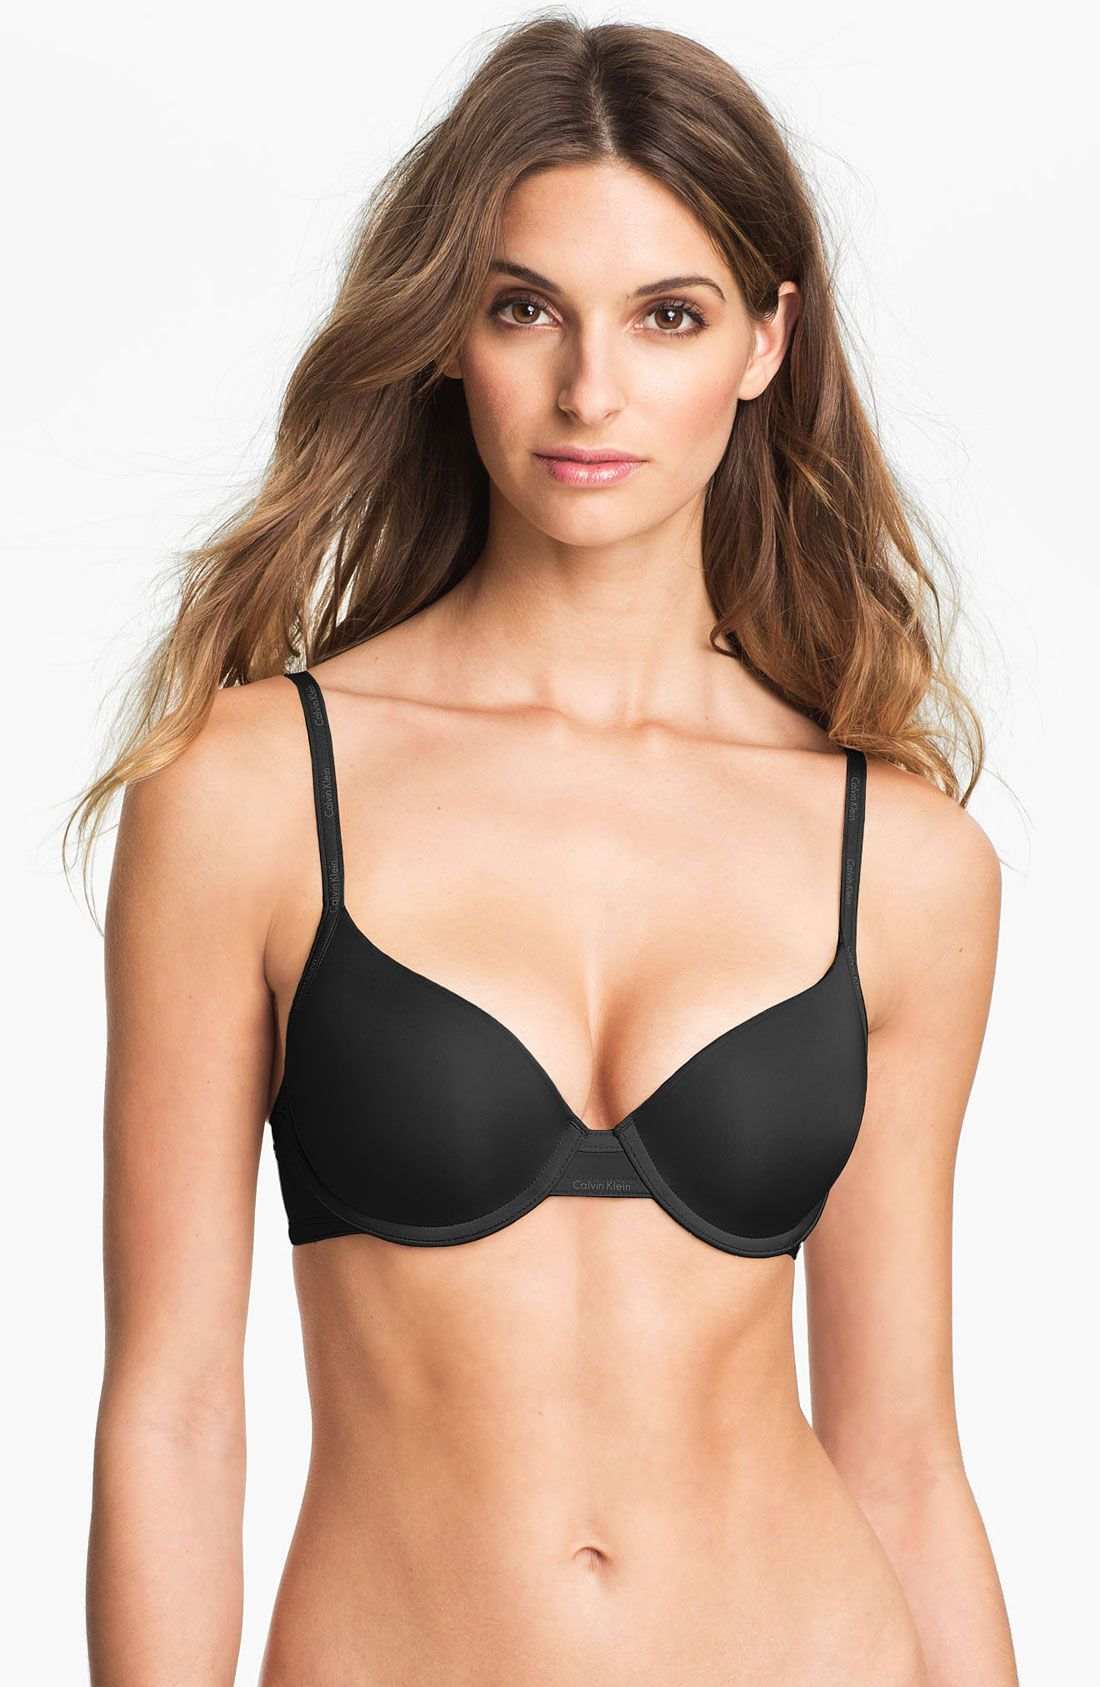 cea0c321944 Calvin Klein  Perfectly Fit Sexy Signature  Underwire Demi Bra ...